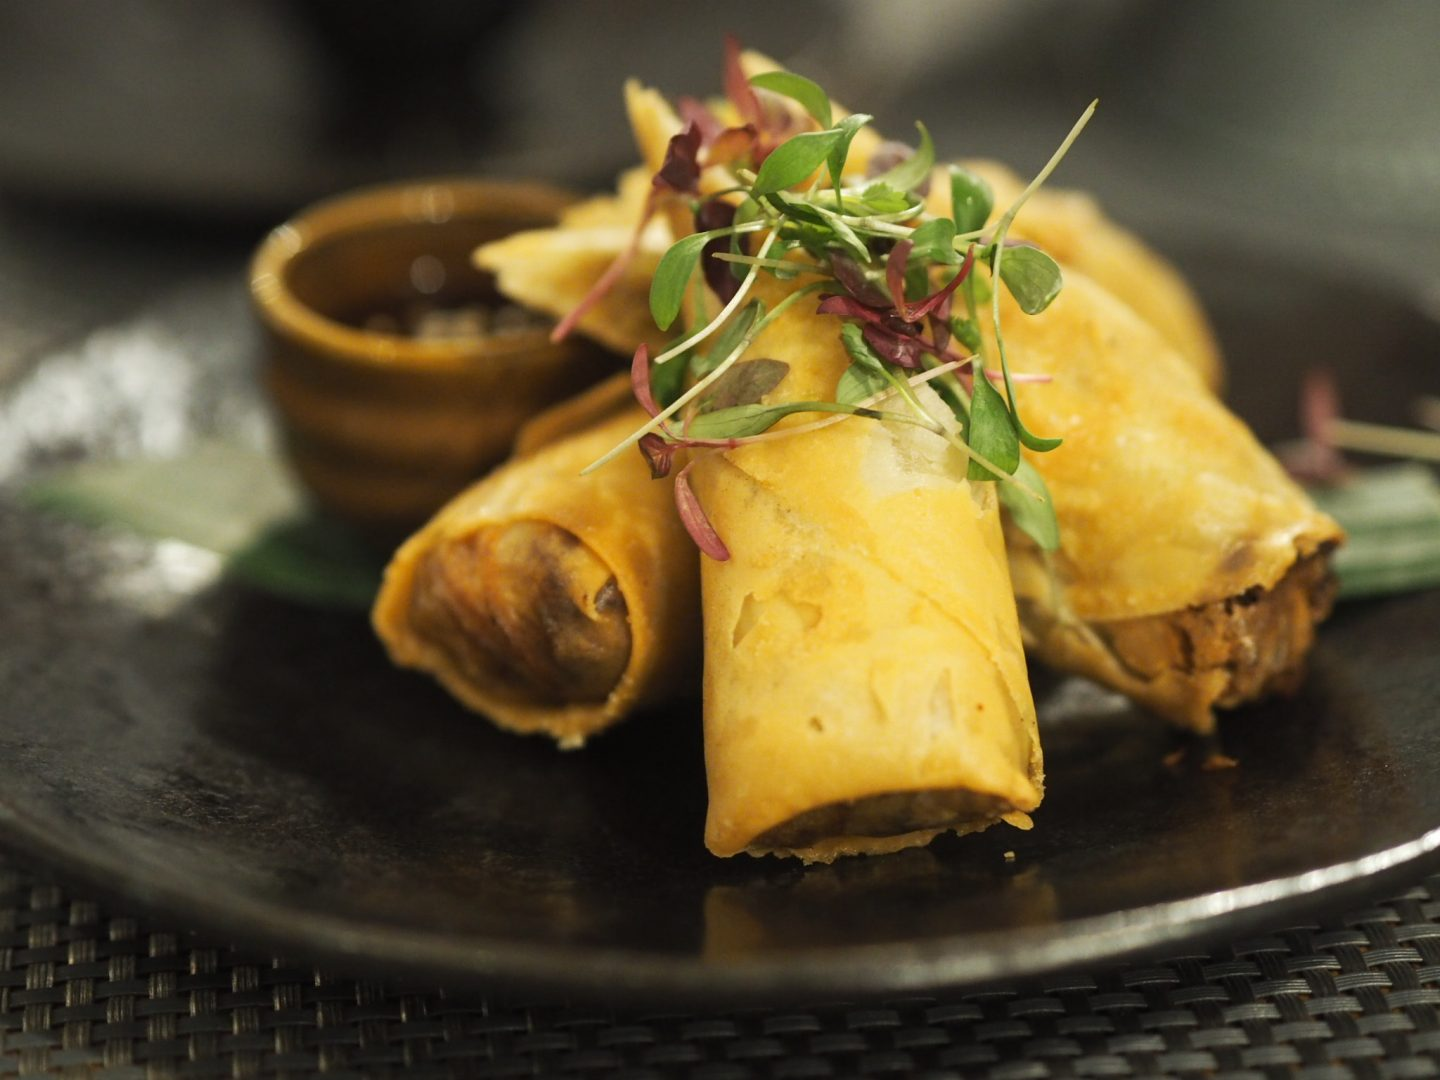 The Giggling Squid duck spring rolls